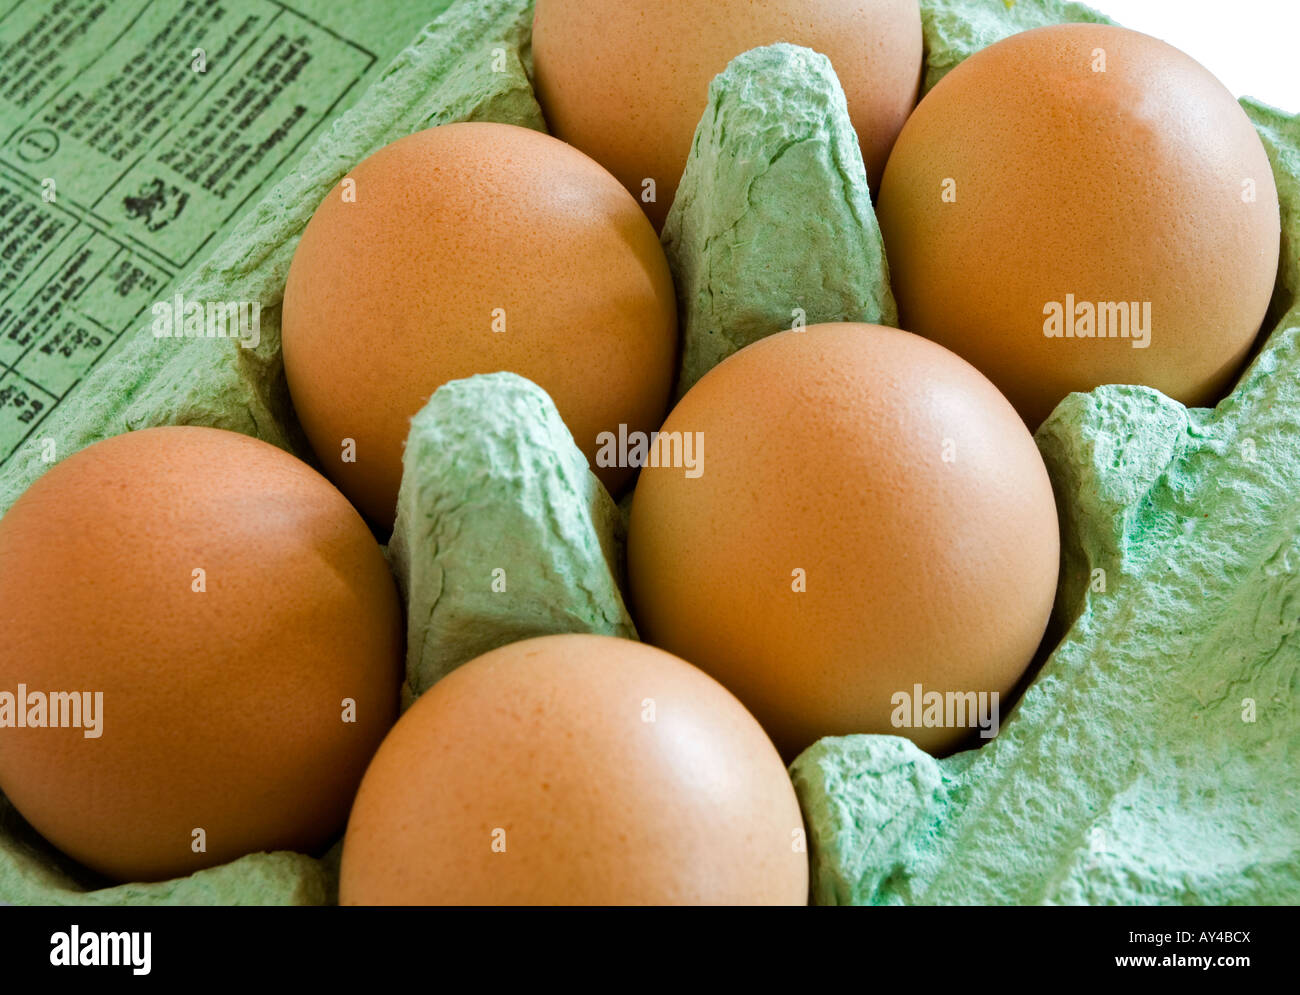 Close up view of free range hen's eggs in a cardboard egg box - Stock Image